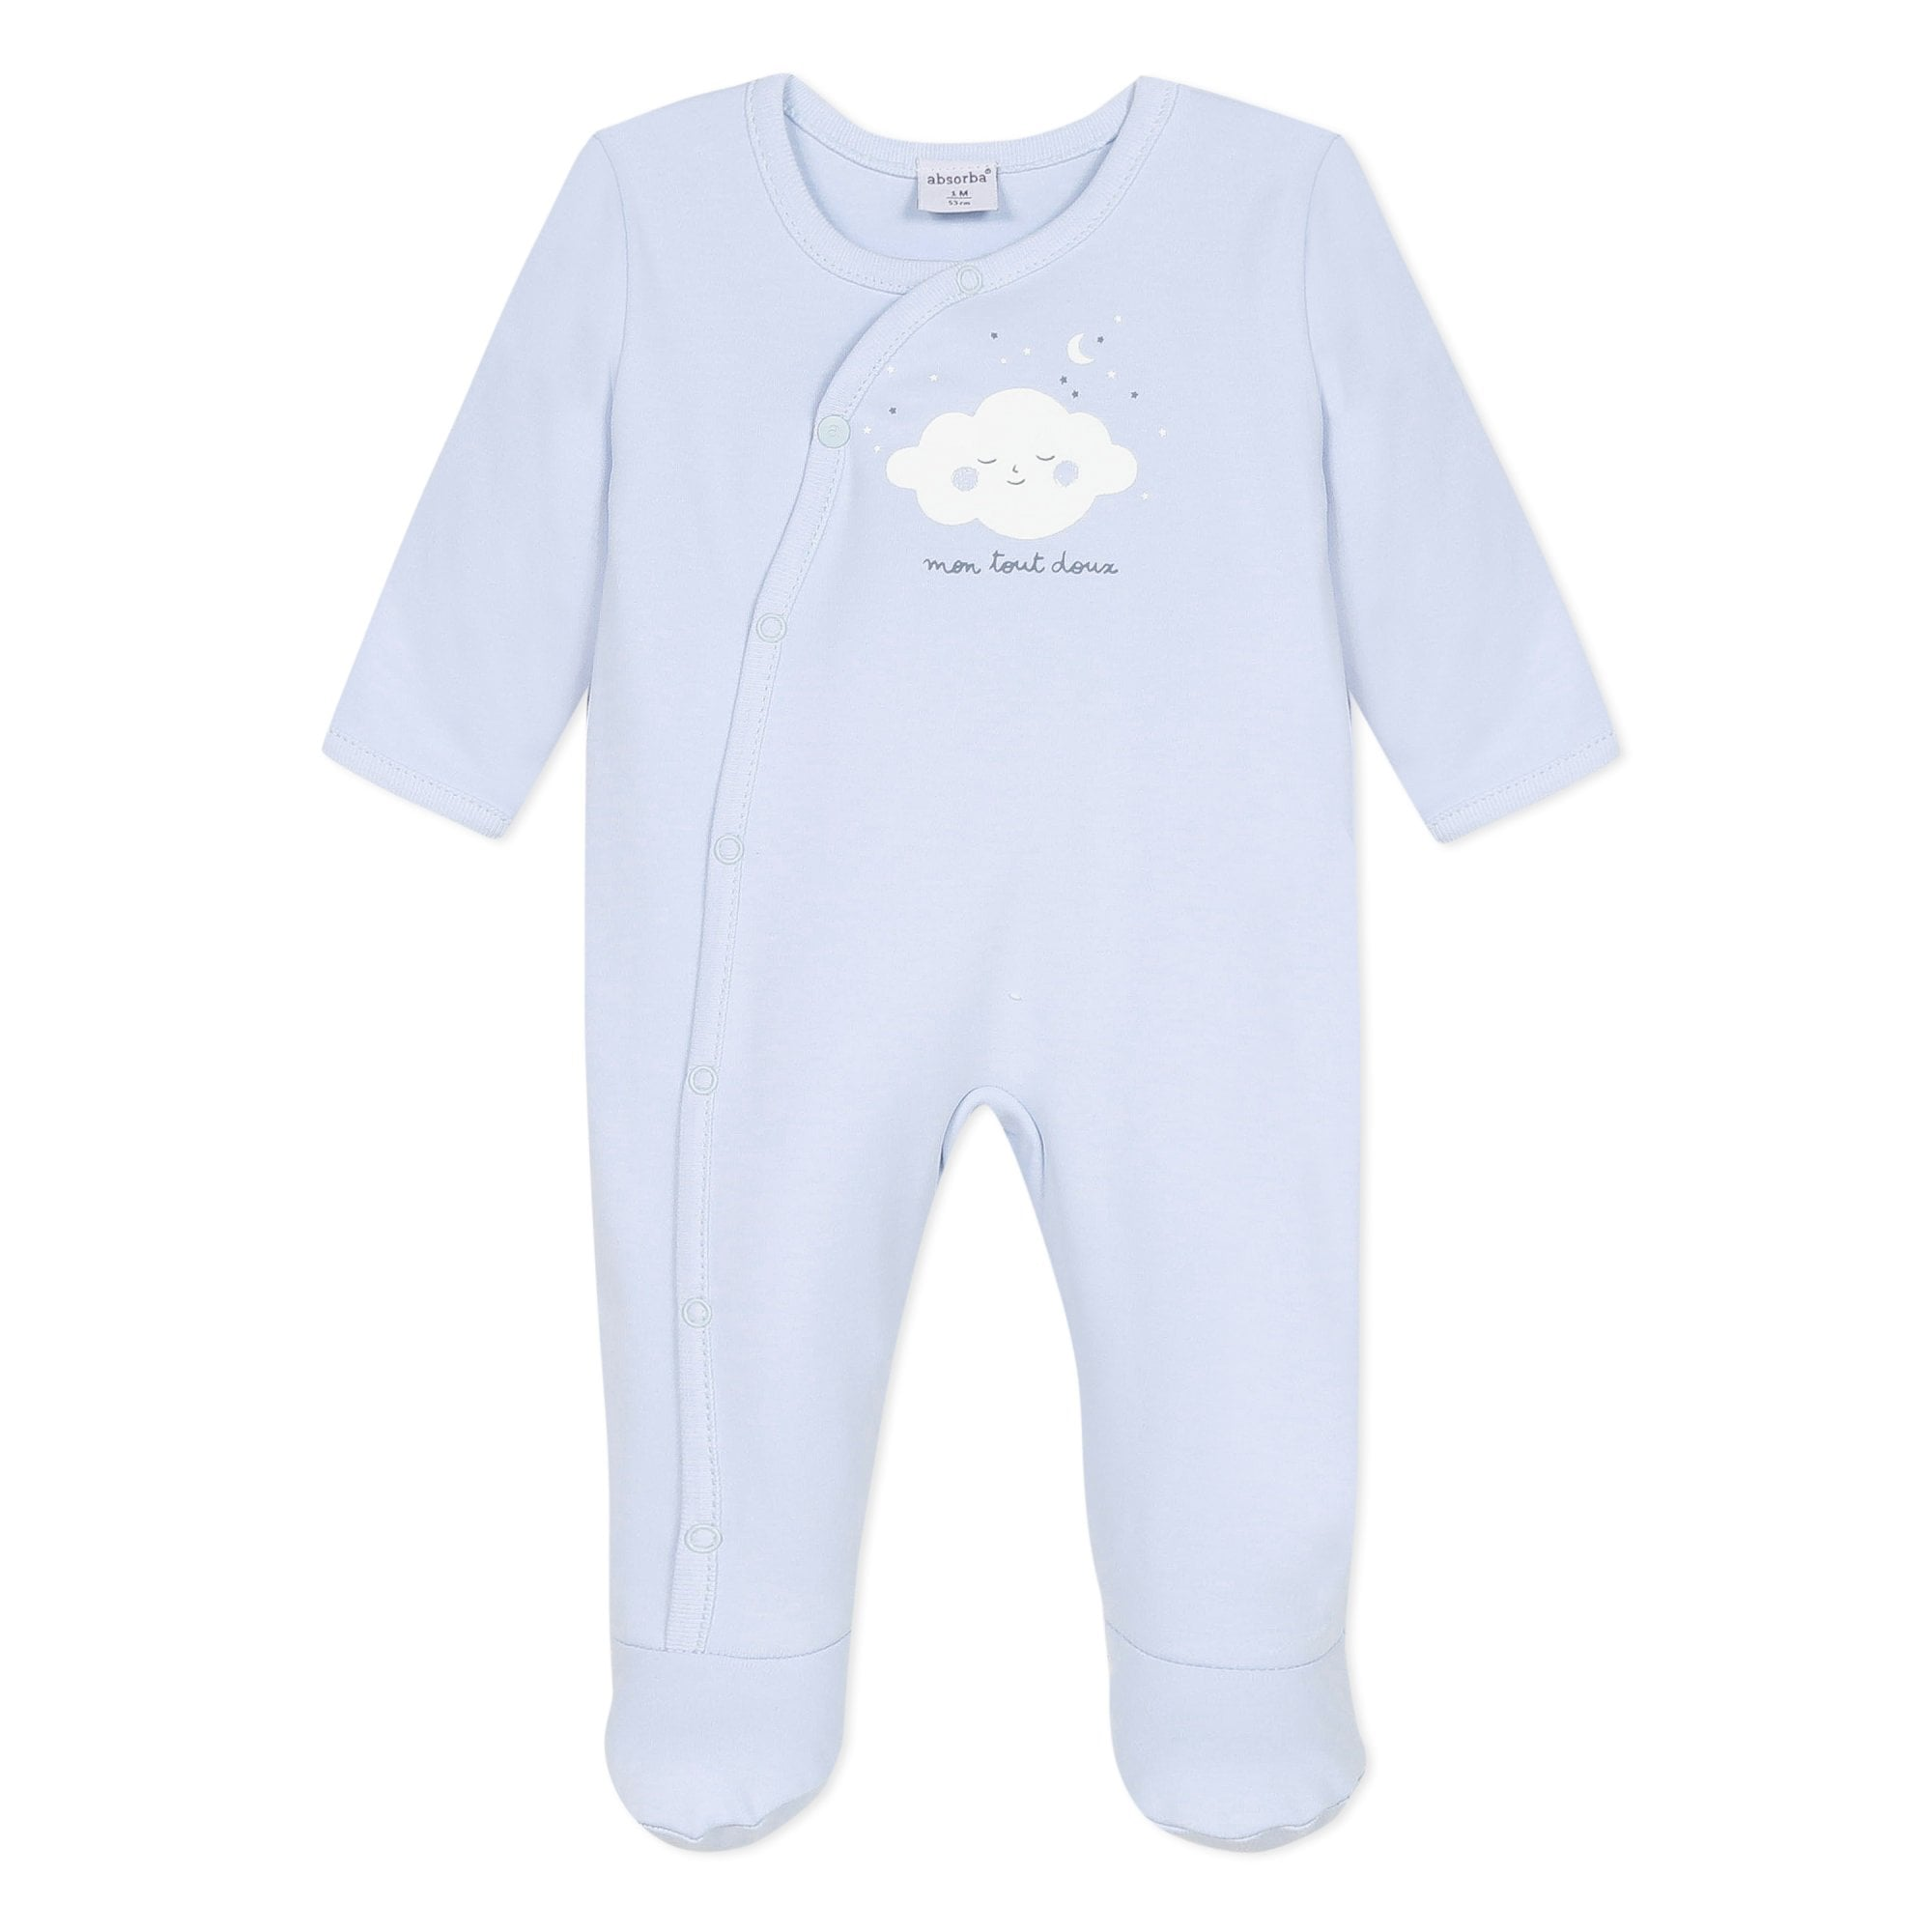 Mintini Baby Boy Romper Two Piece White//Sky Sizes 1,6 Or 9 Months Available